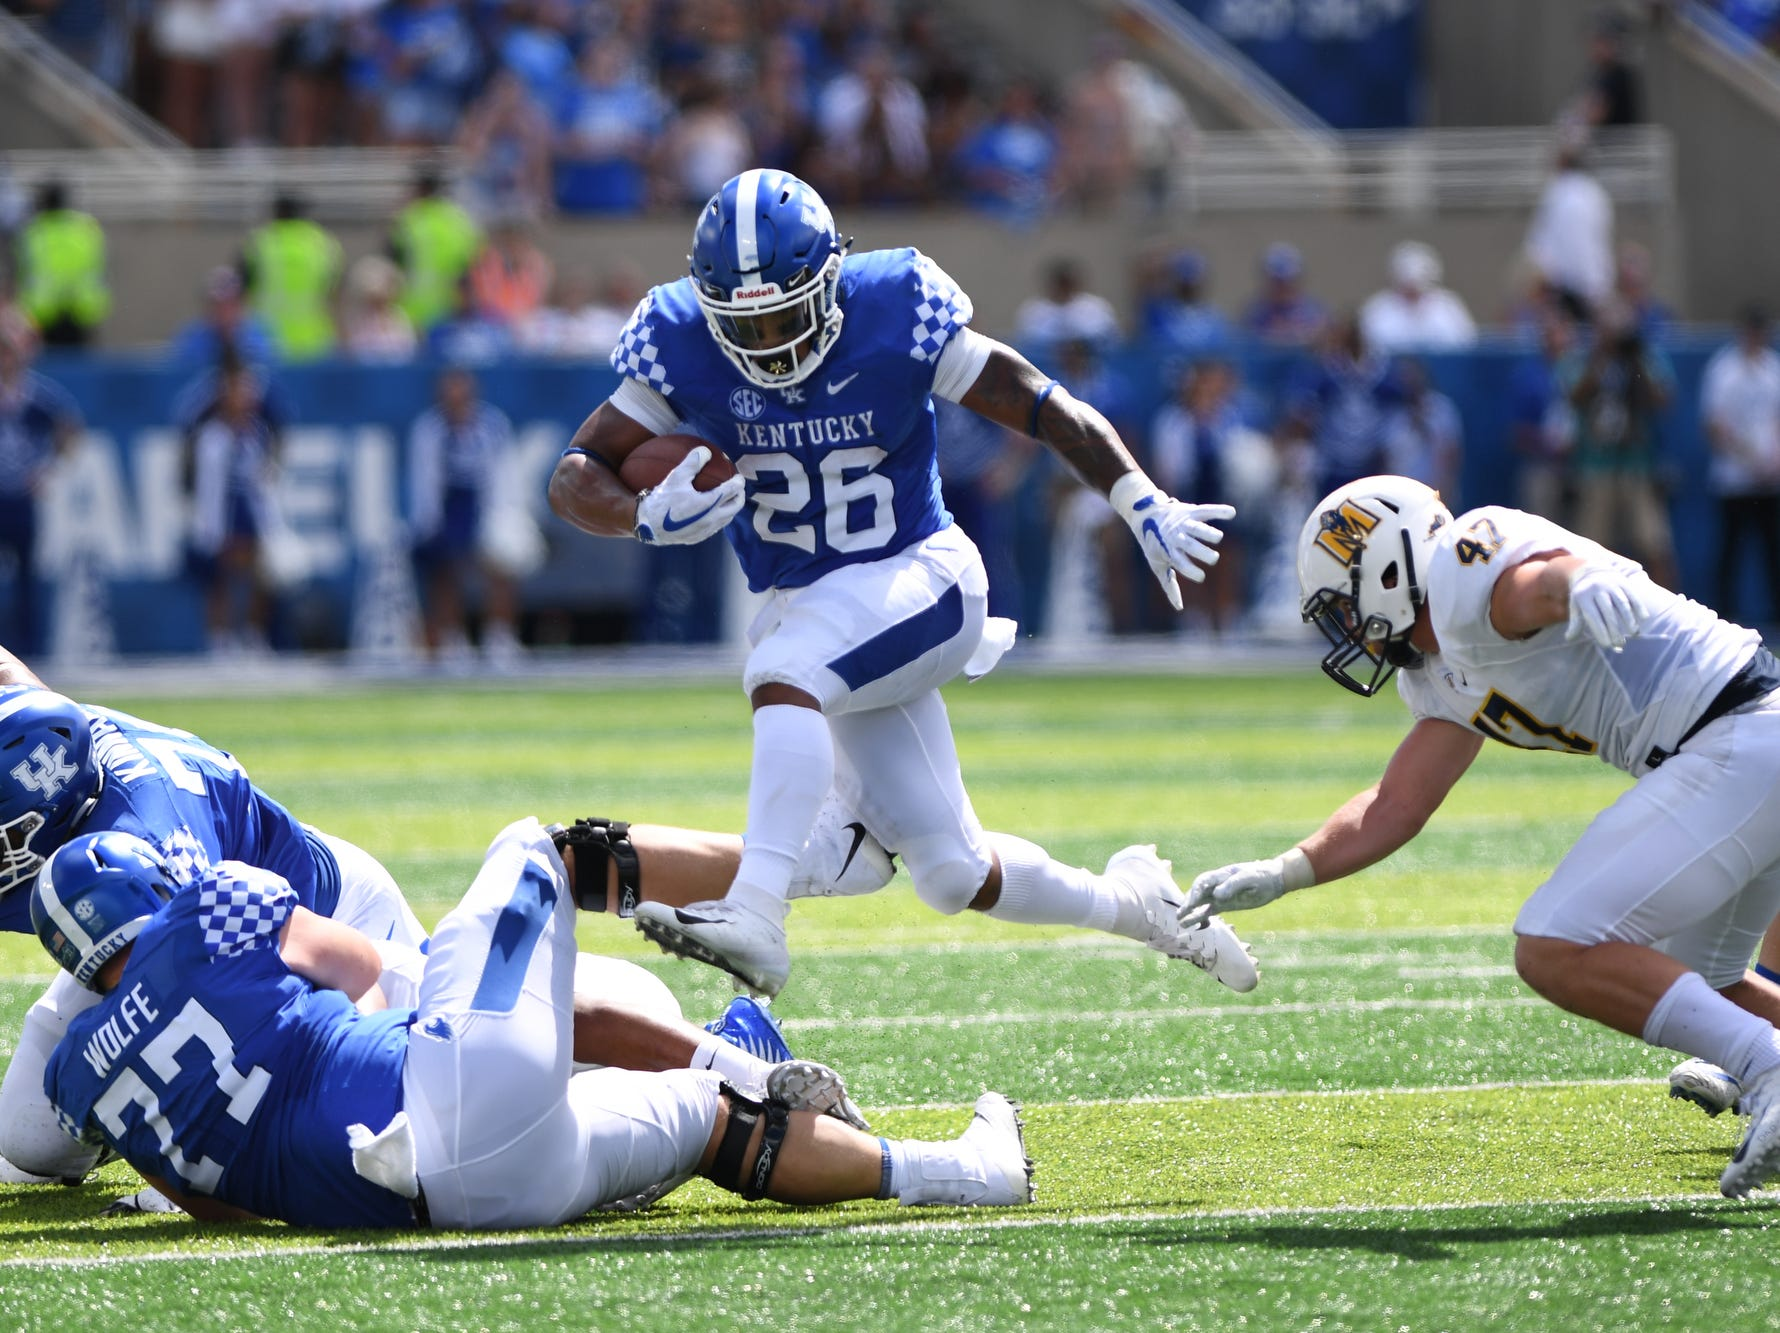 Terry Wilson leads Kentucky football to blowout win over ...